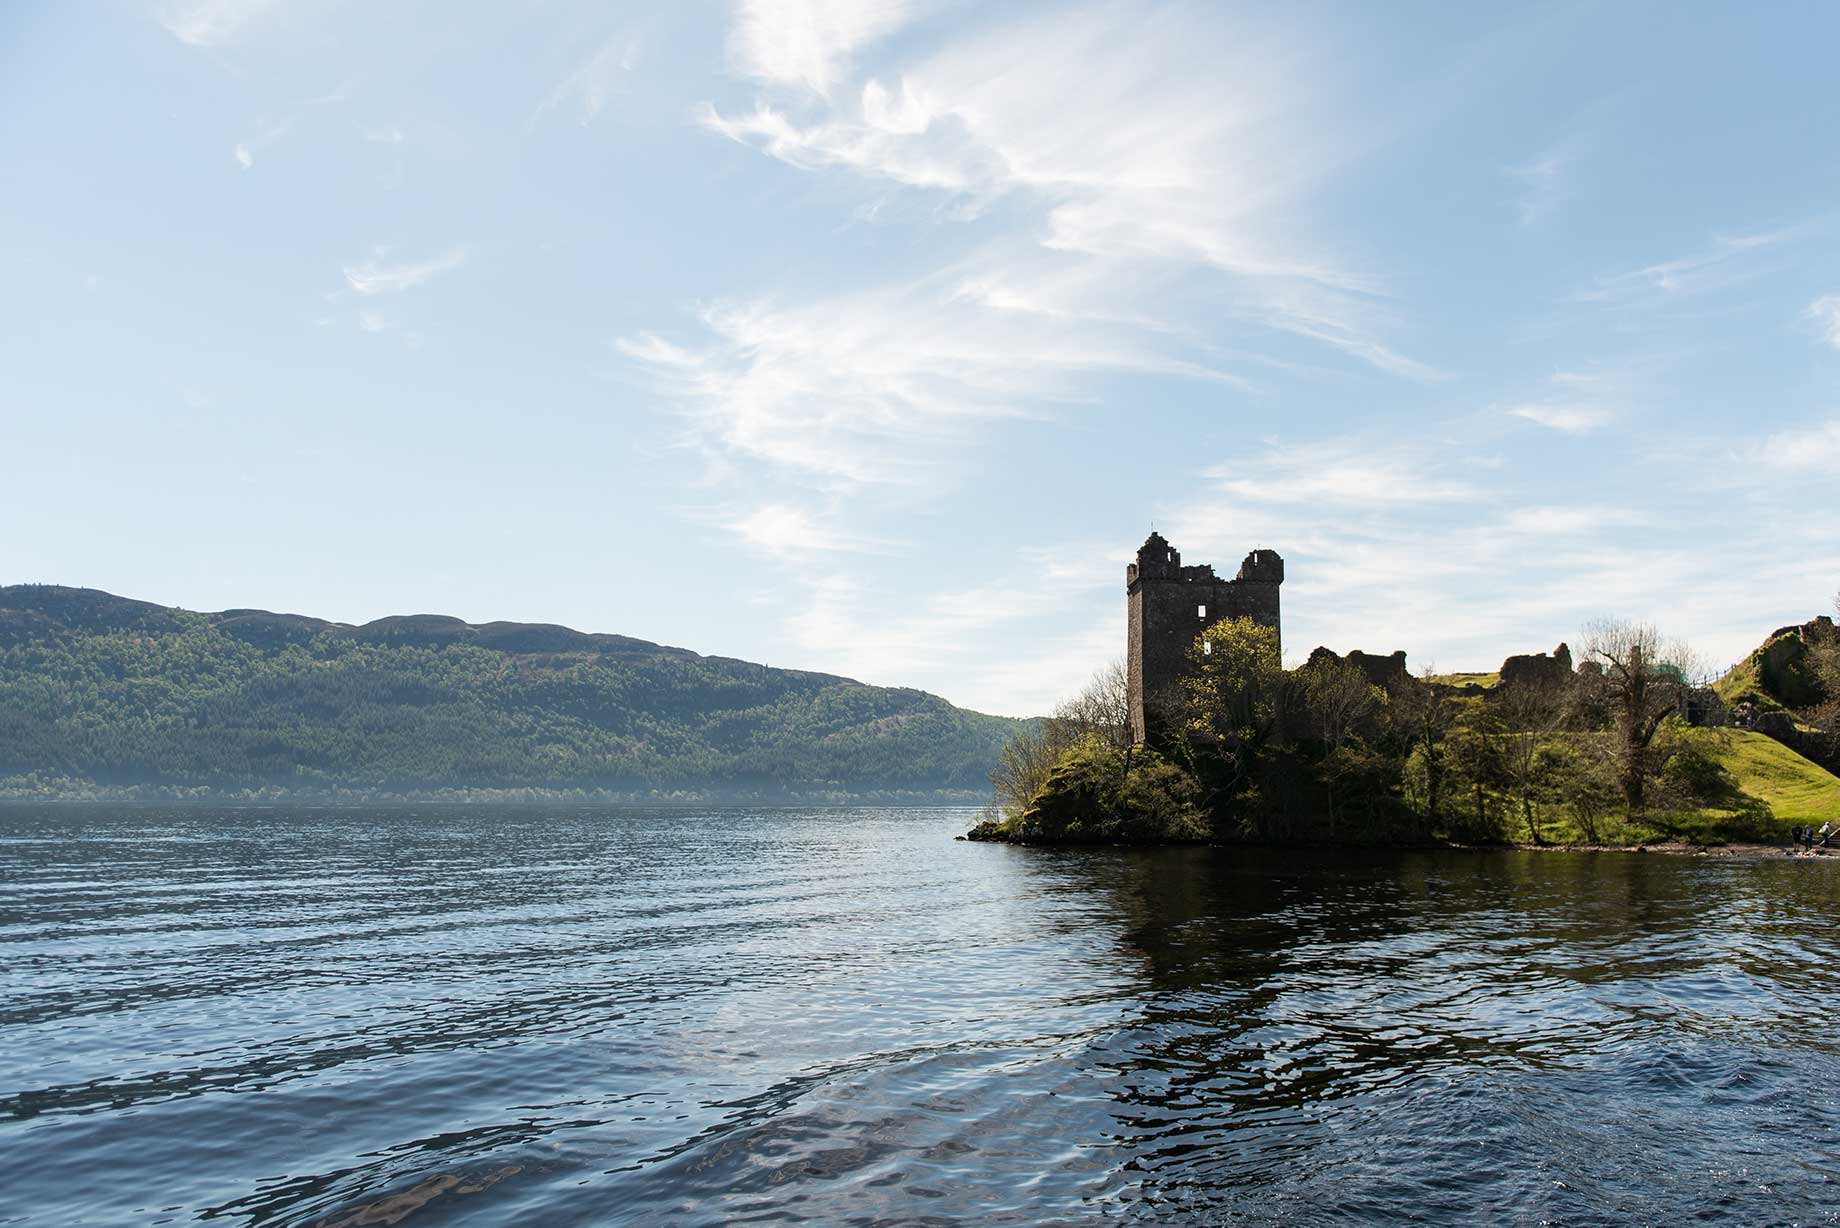 Loch Ness,in Scotland with a view of Urquhart Castle.